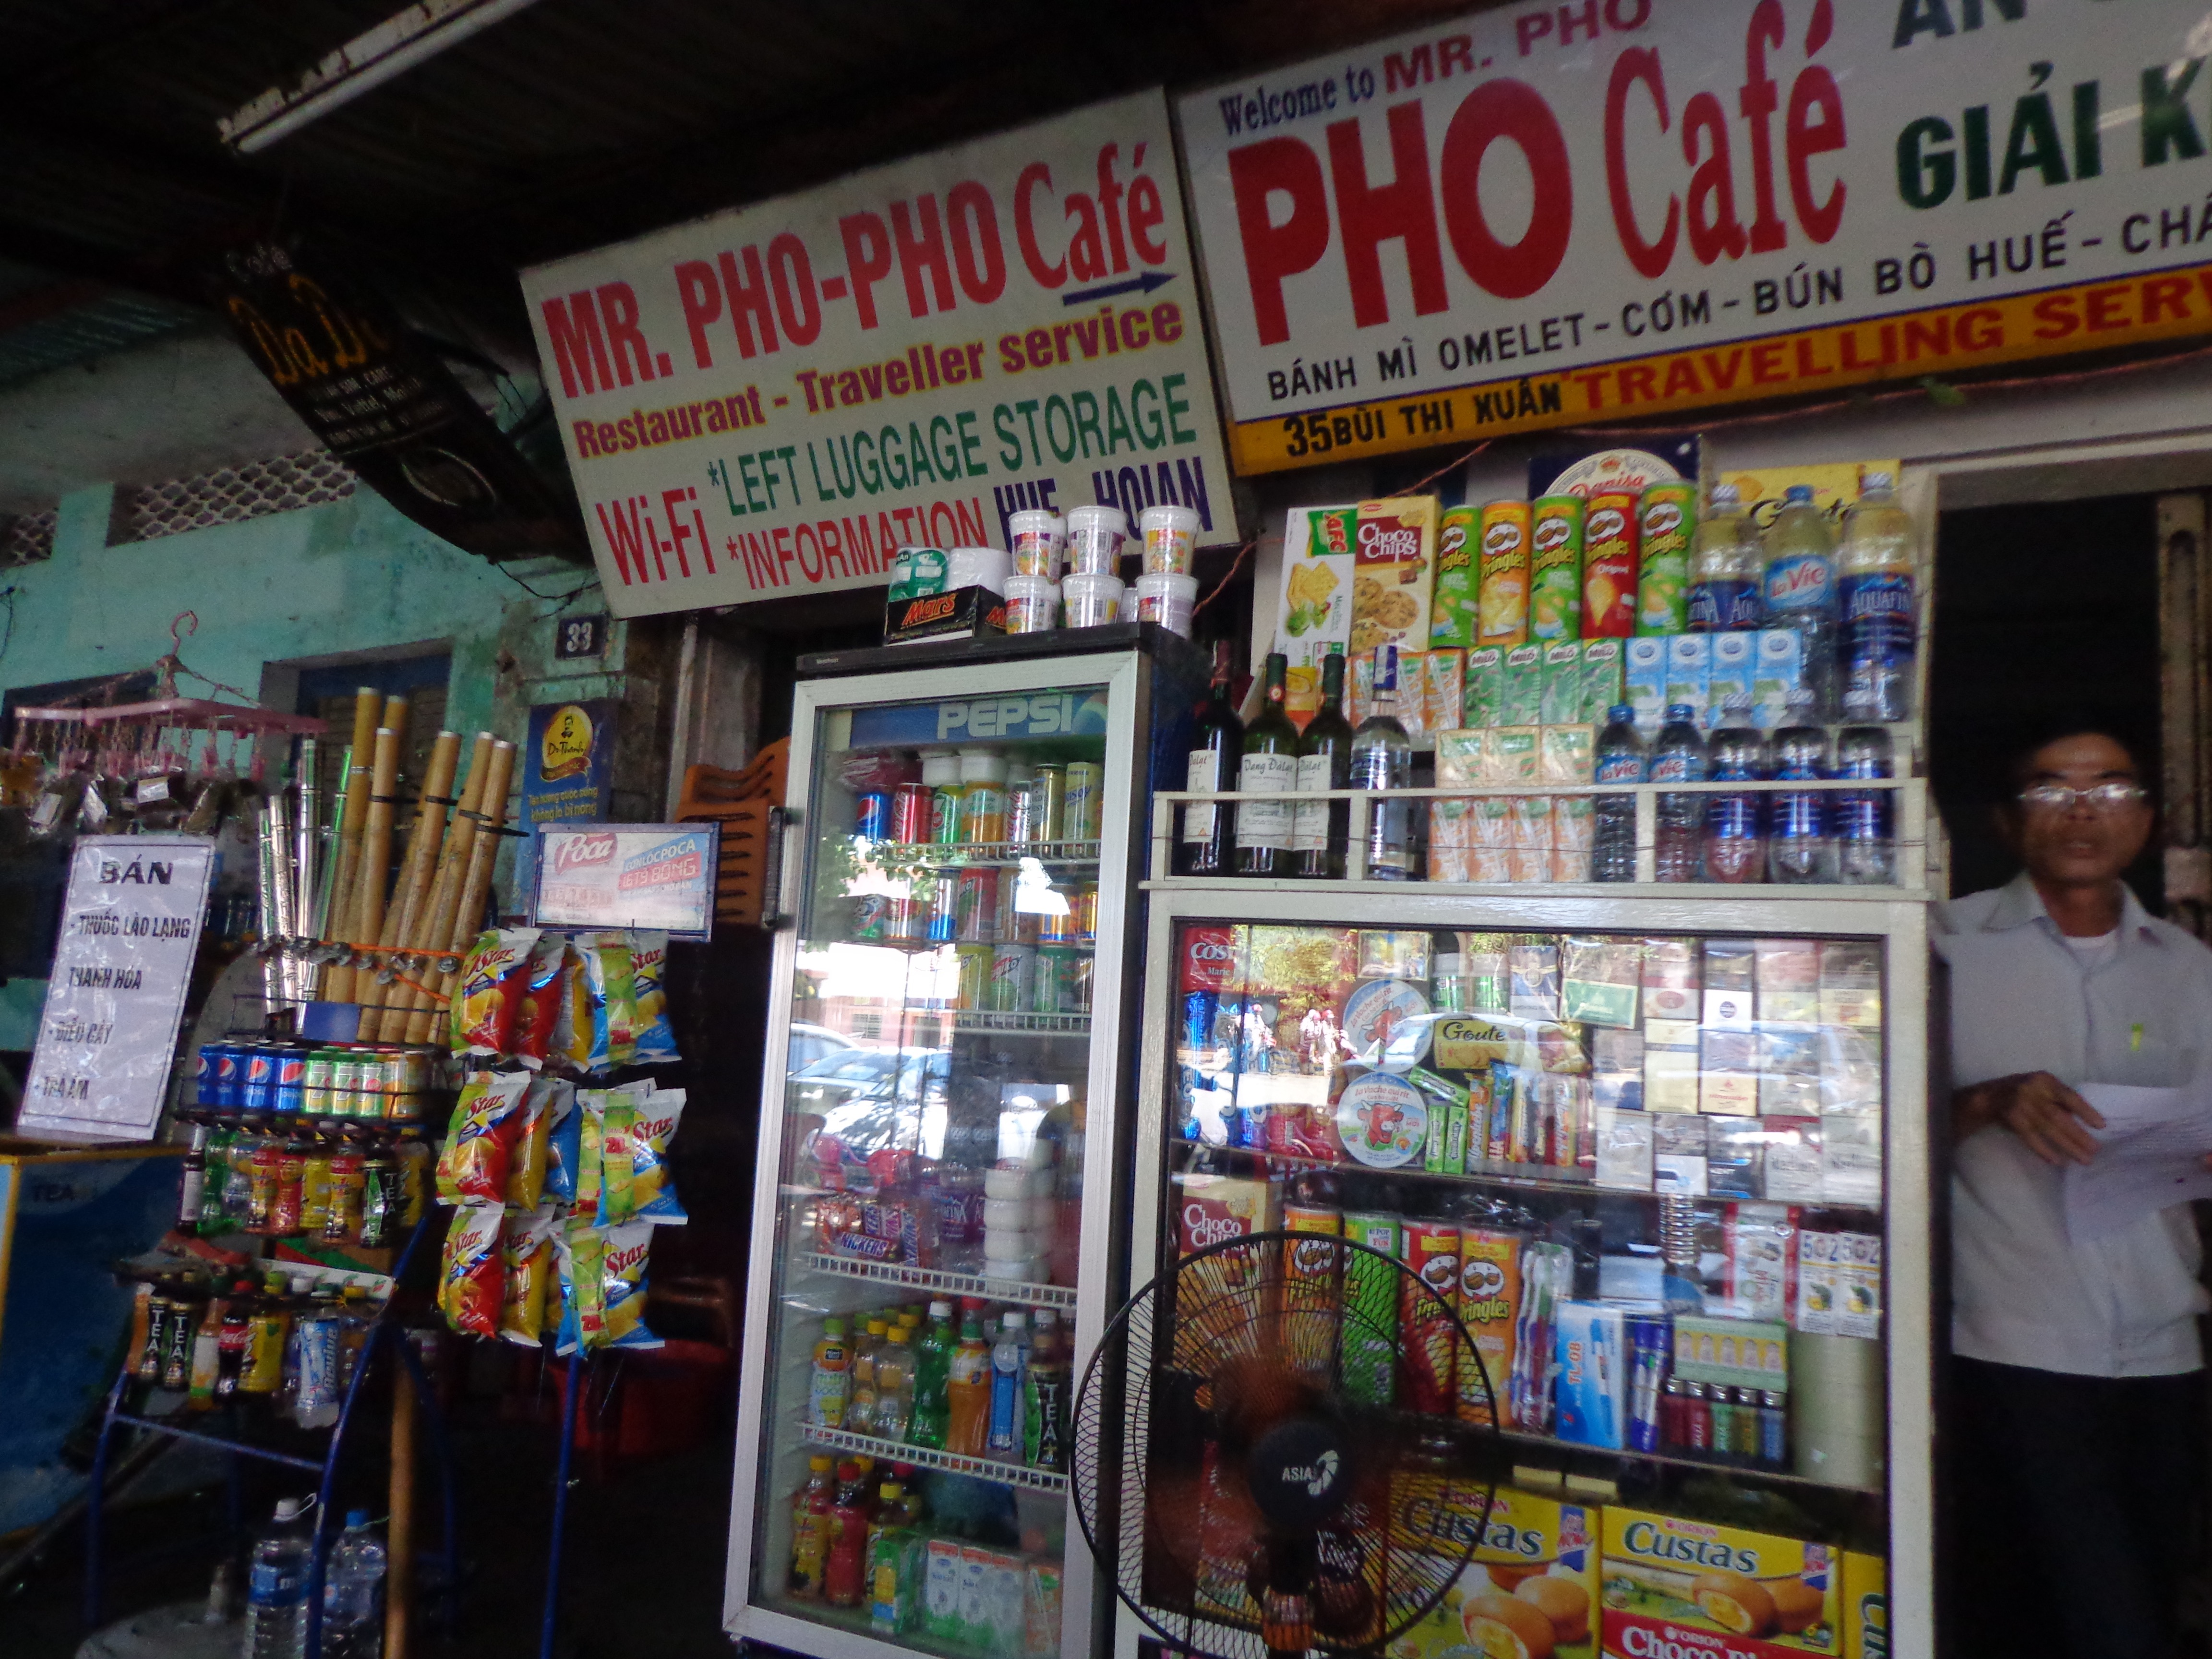 Mr. Pho - Pho cafe is located just opposite to train station.